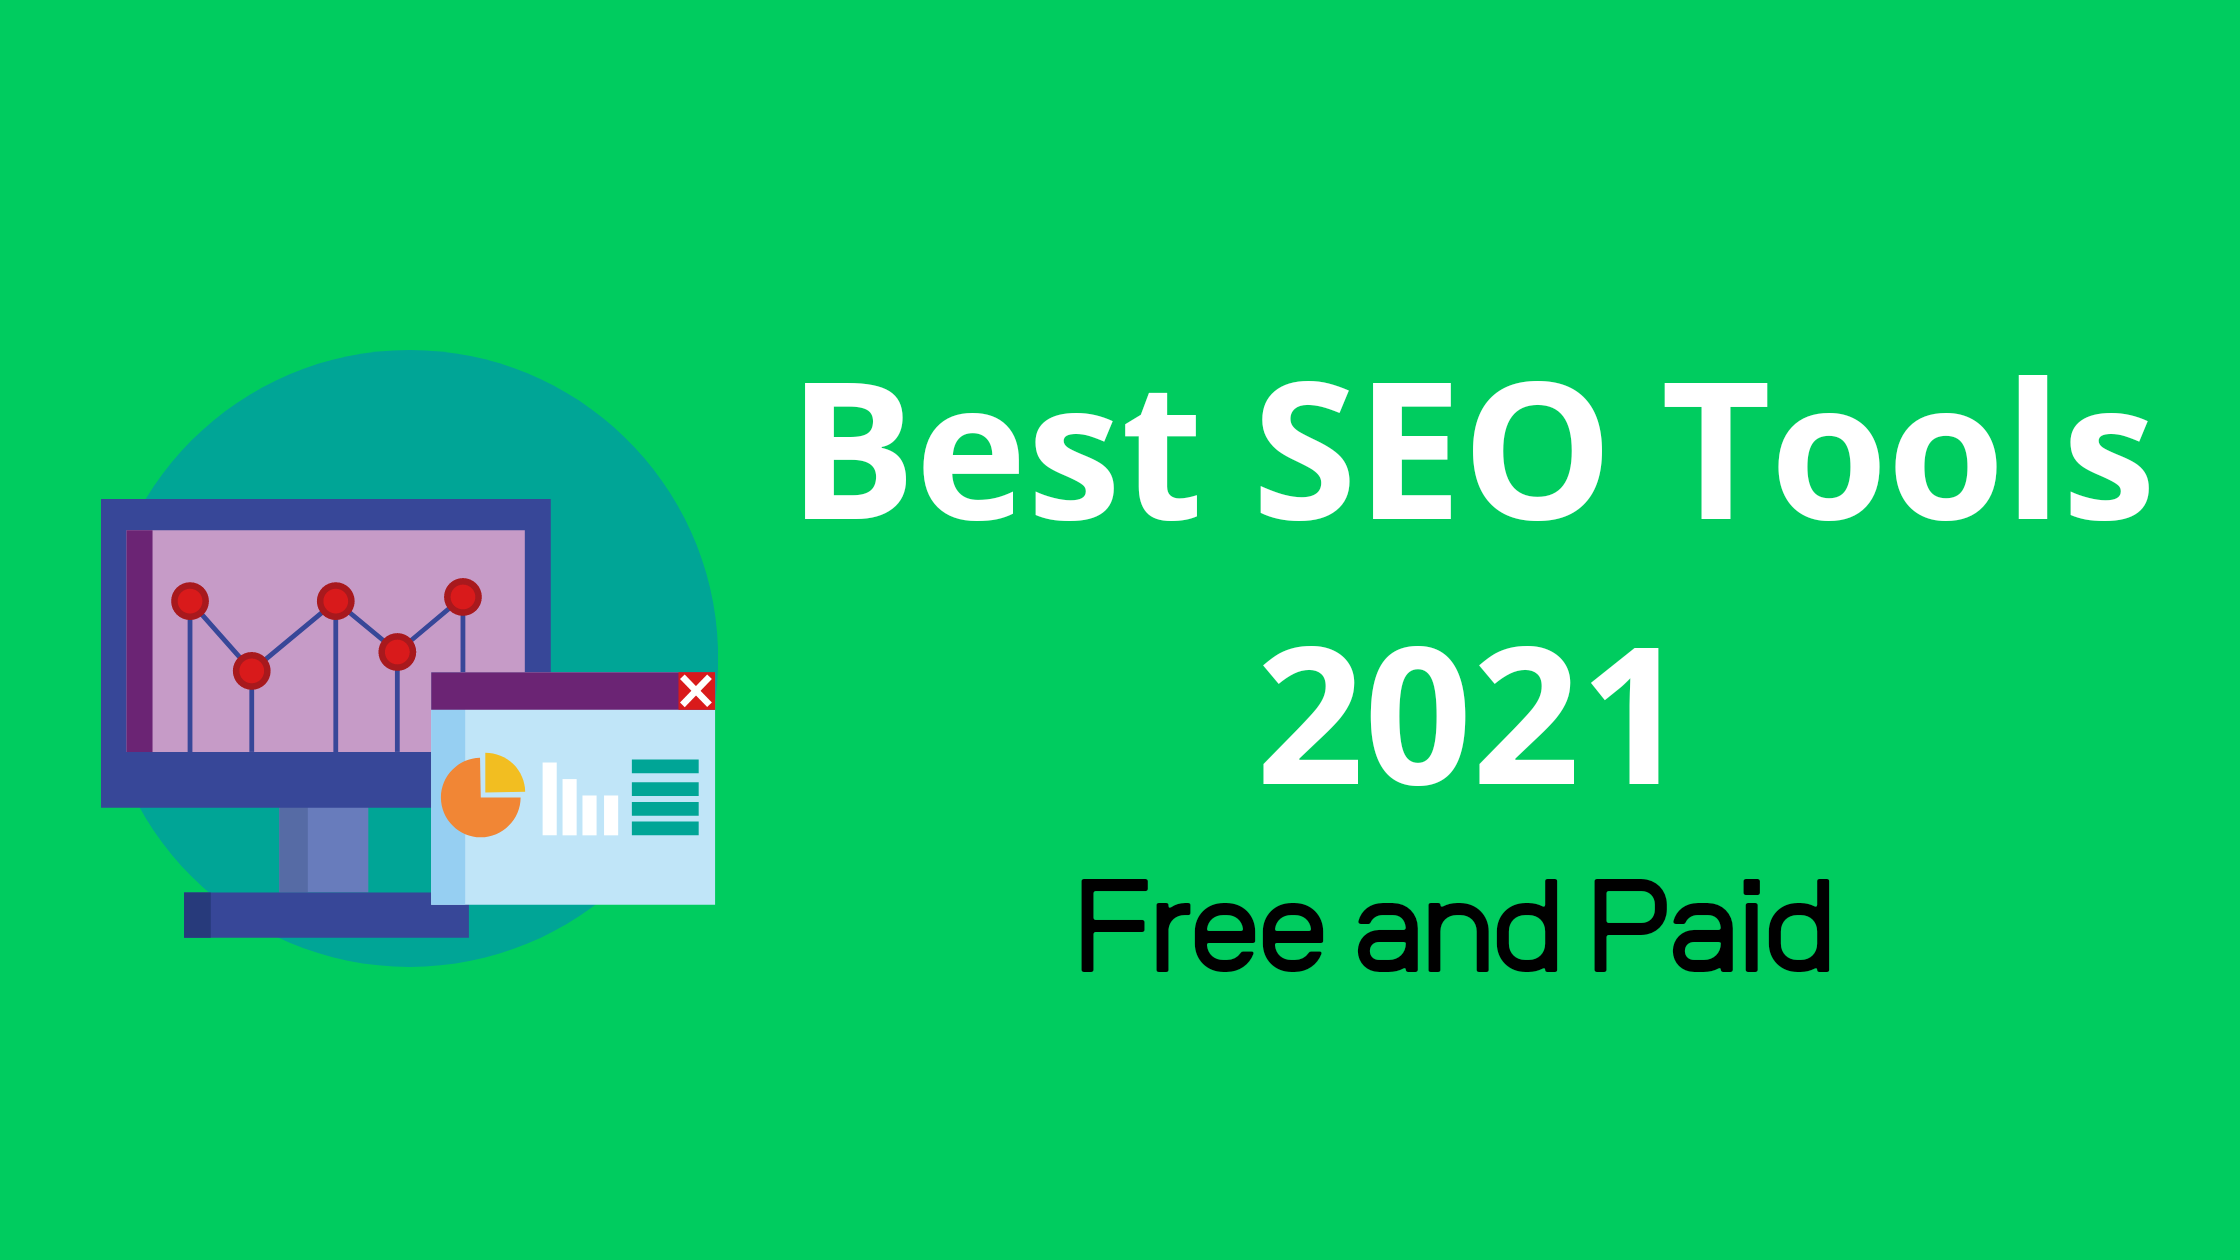 Best SEO Tools of 2021 - Free and Paid